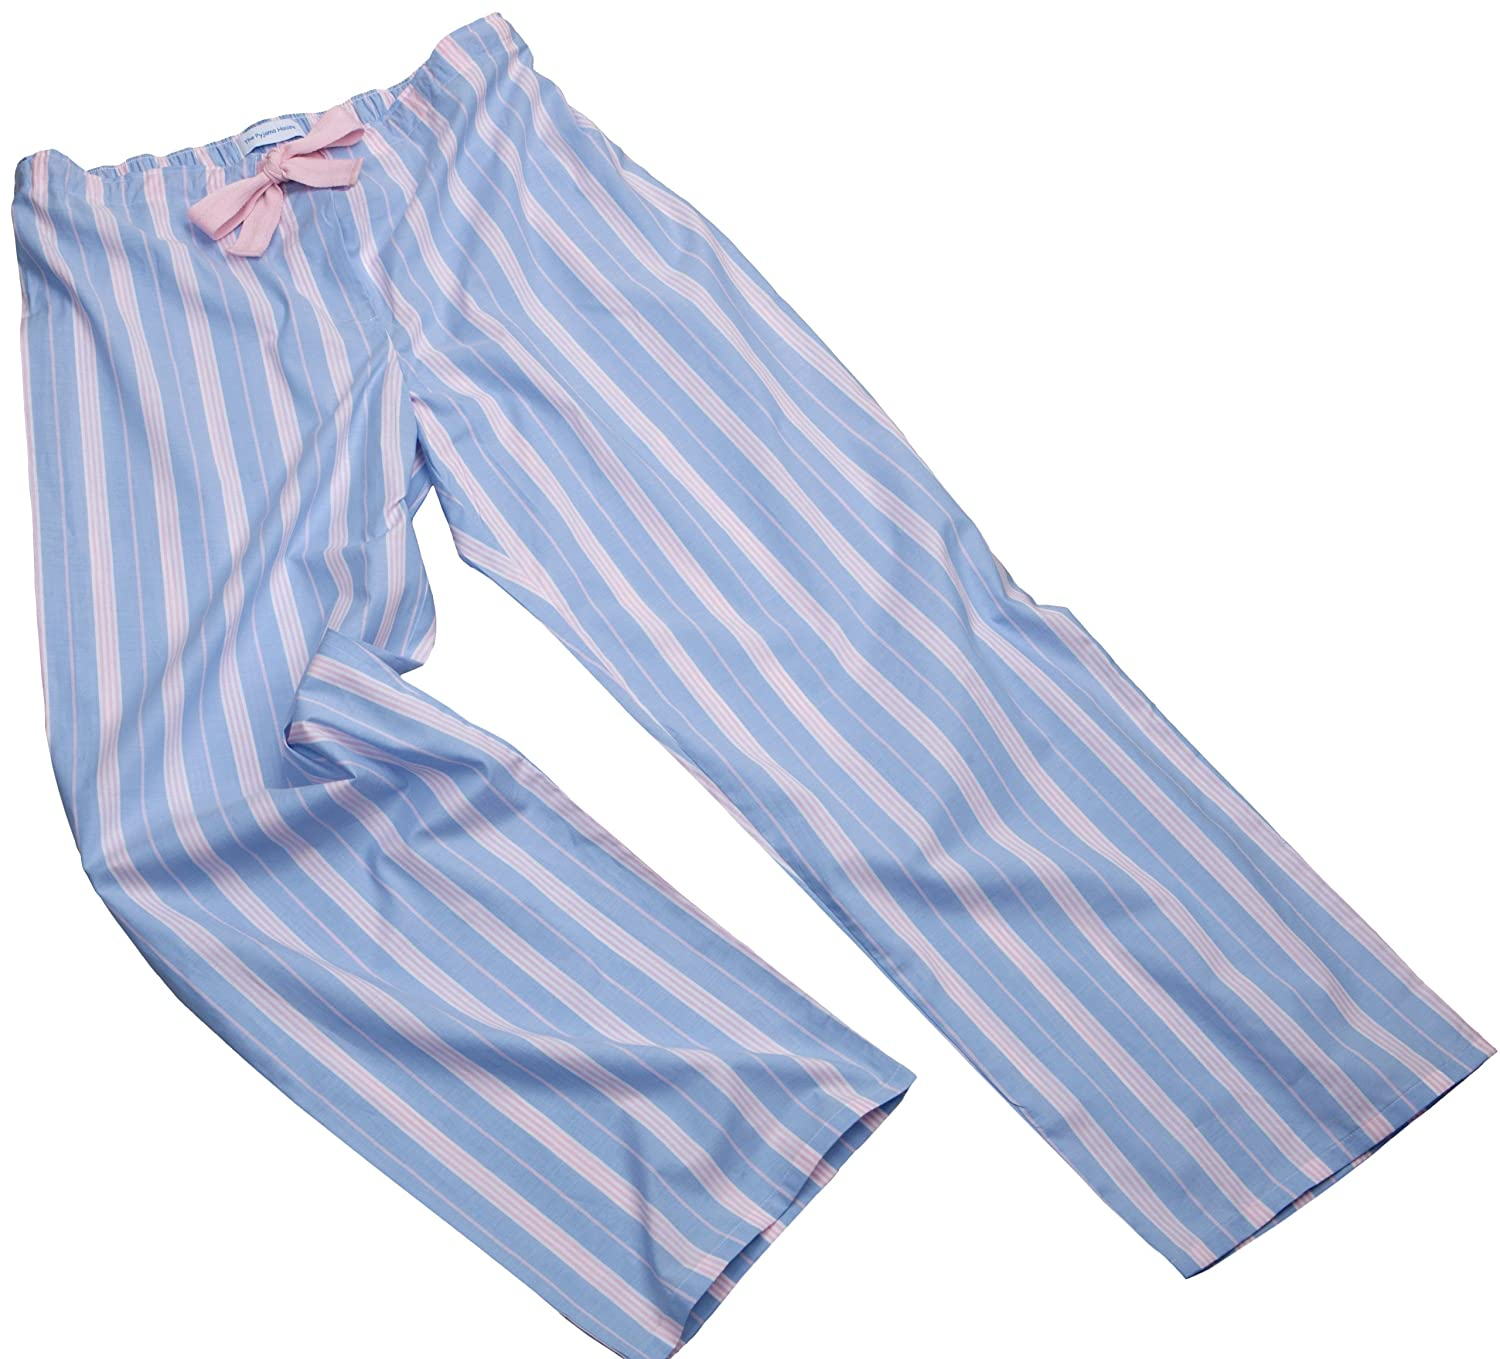 Pyjama Bottoms (Lounge Pants) for Women and Teenagers